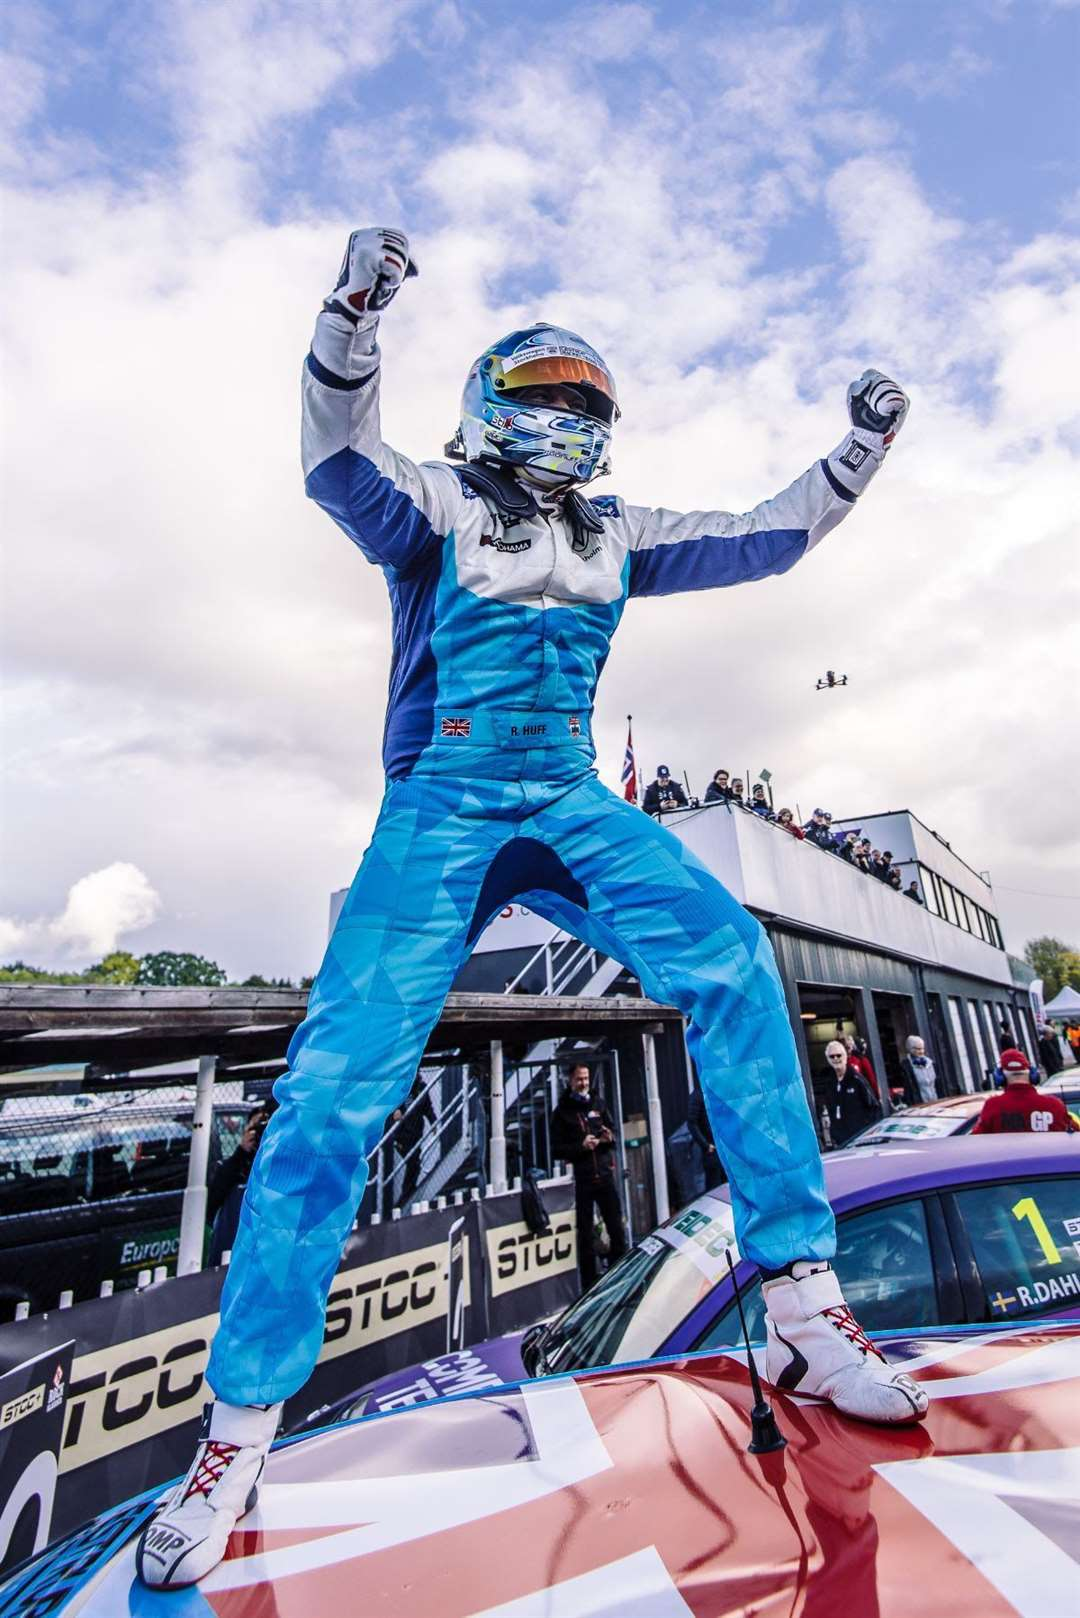 Rob Huff wins the 2020 STCC TCR Scandinavia championship at the Ring Knutstorp. Picture: Martin Öberg (42648183)